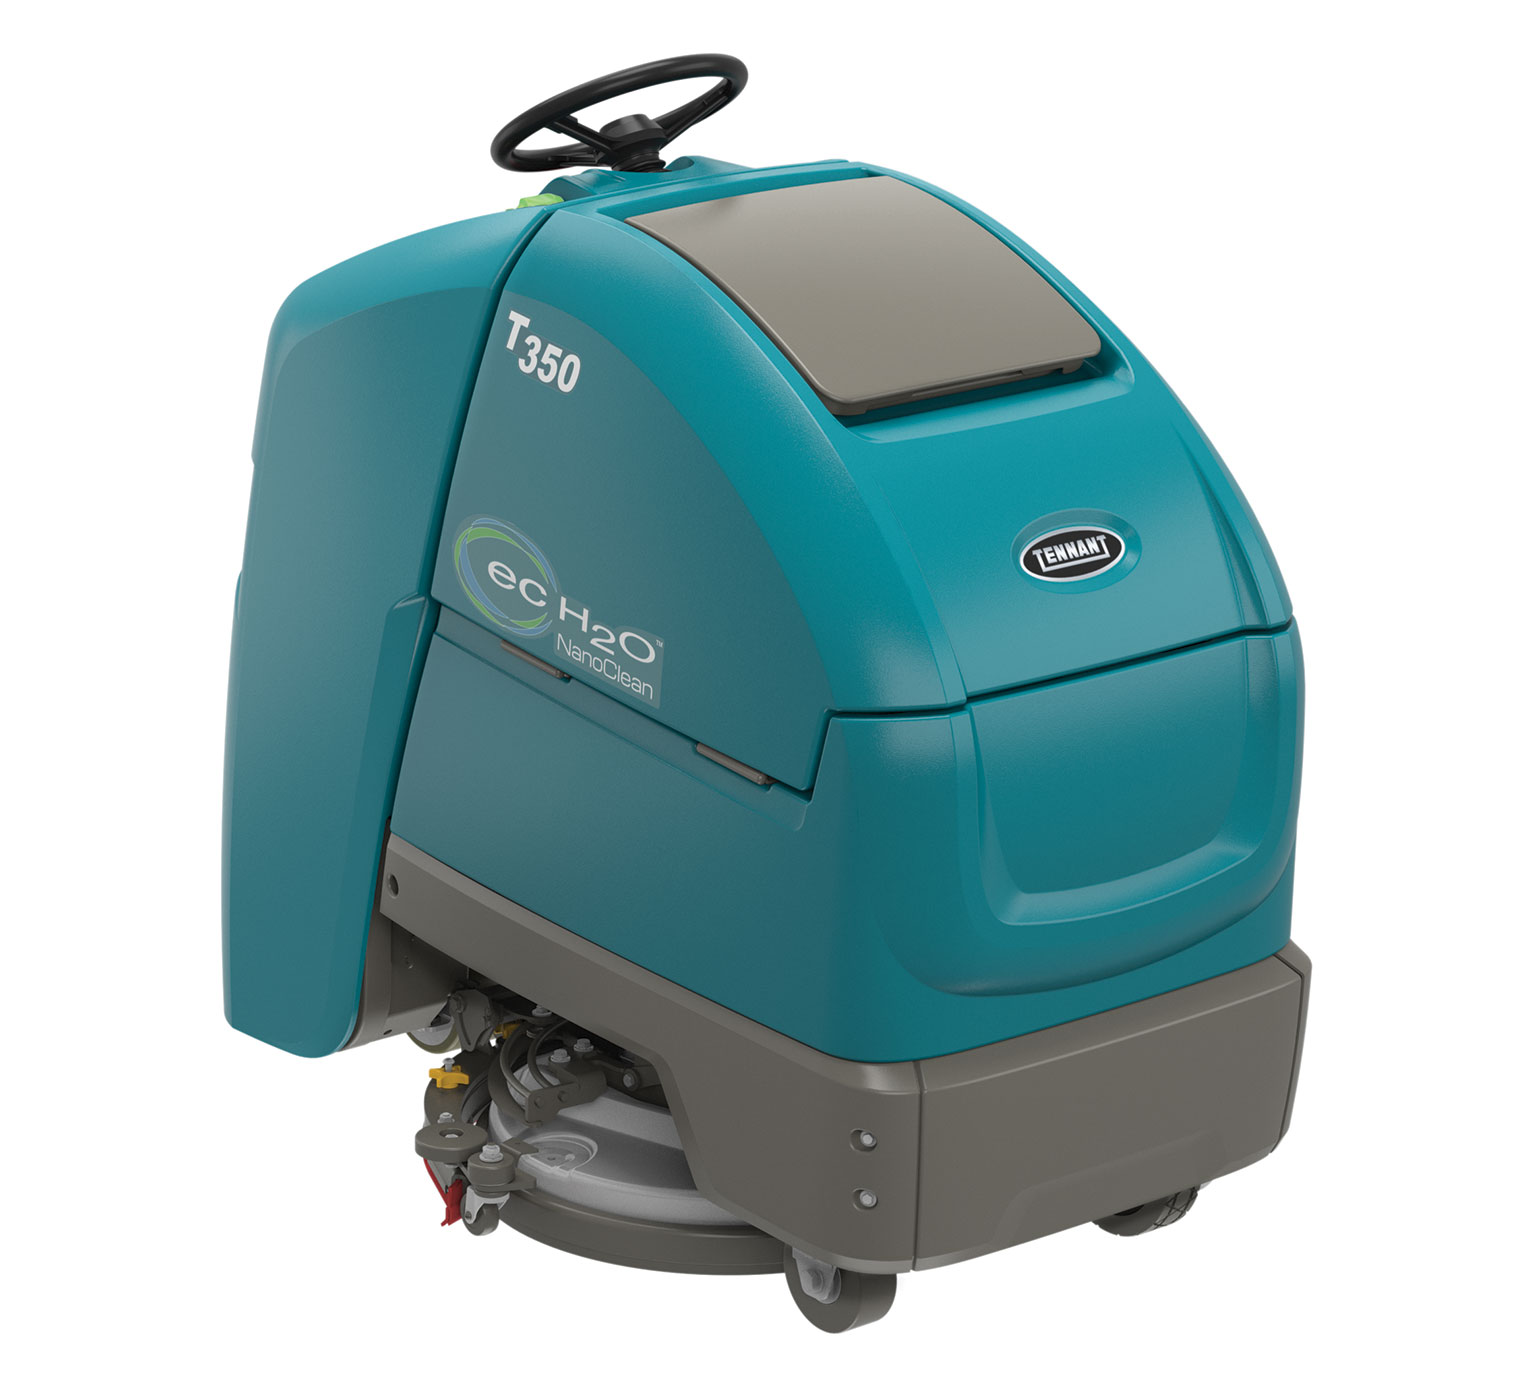 Tennant T350 Stand-On Floor Scrubber